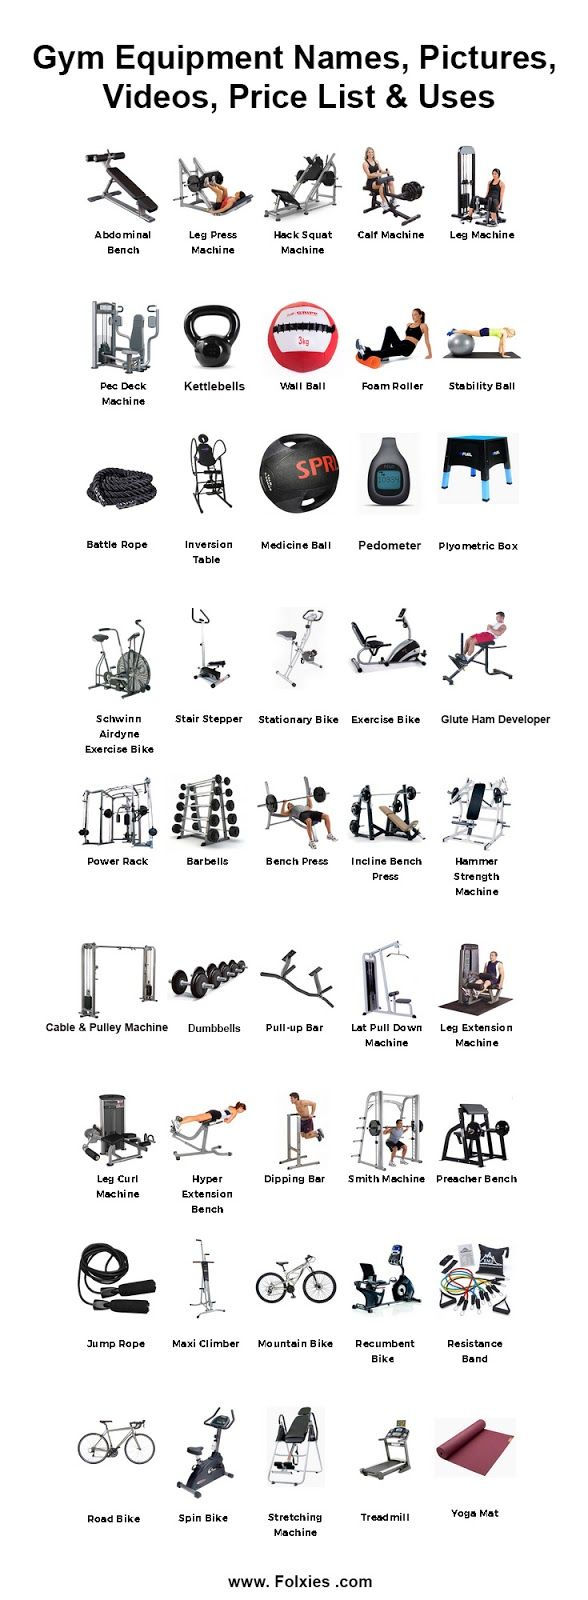 Gym Equipment Names Pictures Videos Price List And Uses  Gym